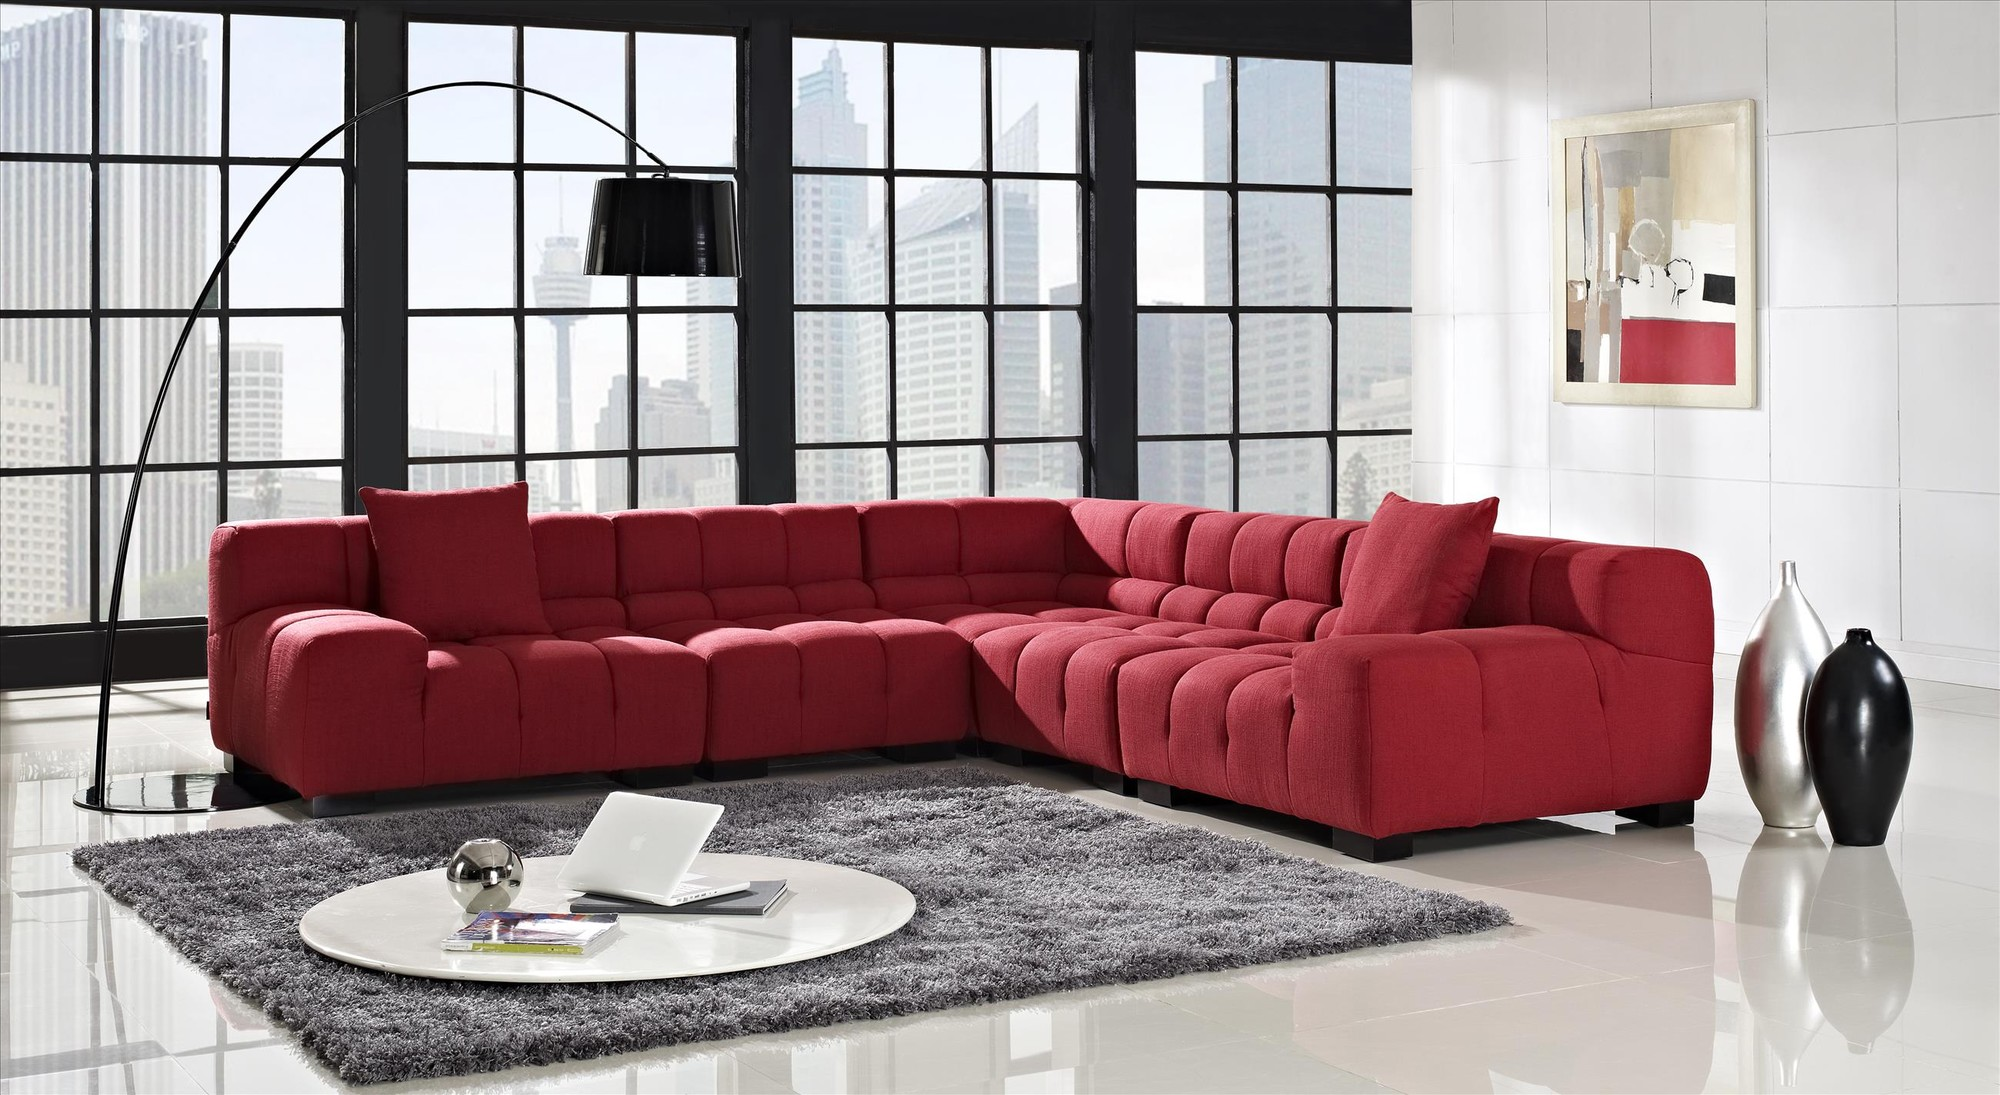 How to choose modern sectional sofas for your home for Living room modern sofa